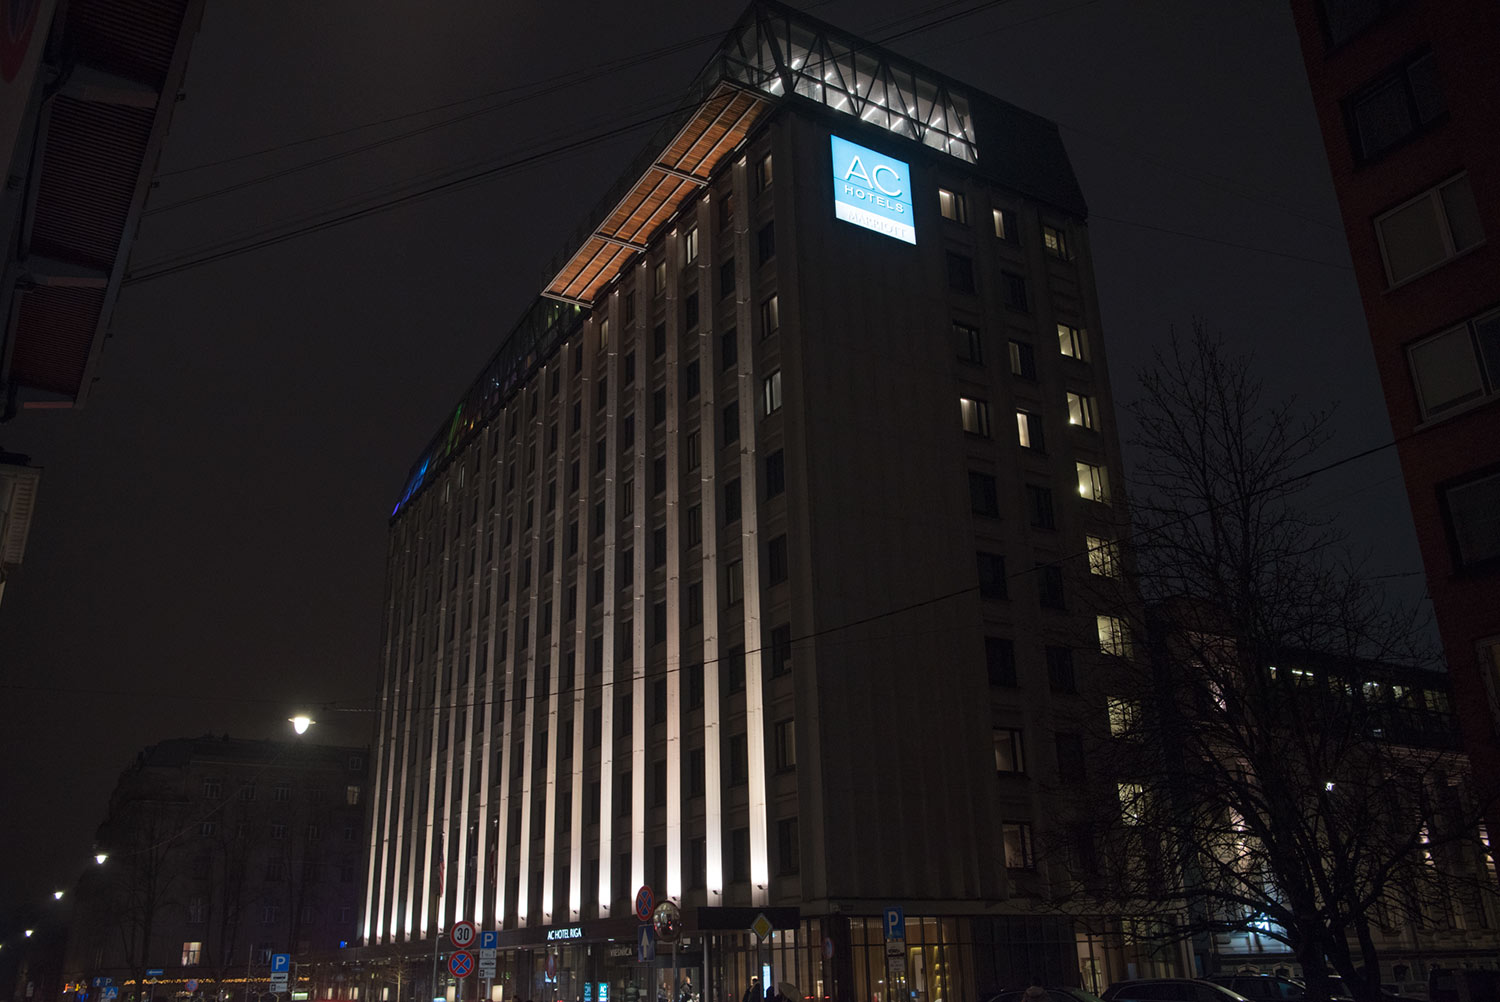 AC Hotel by Marriott Riga